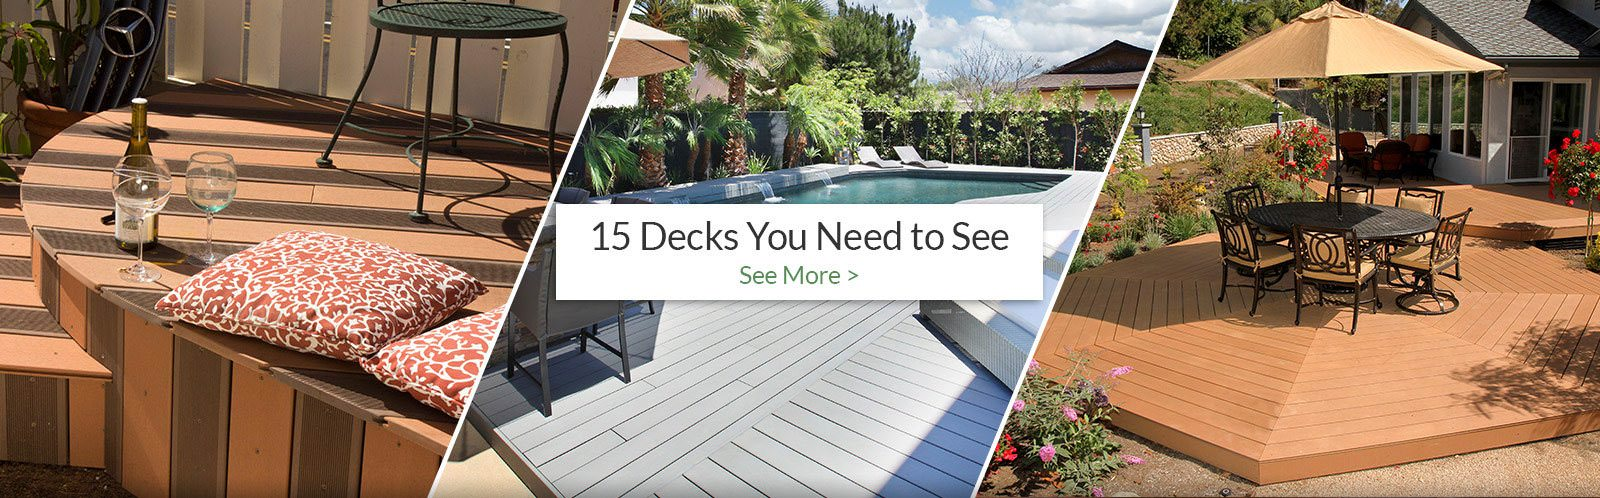 15 Decks you need to see